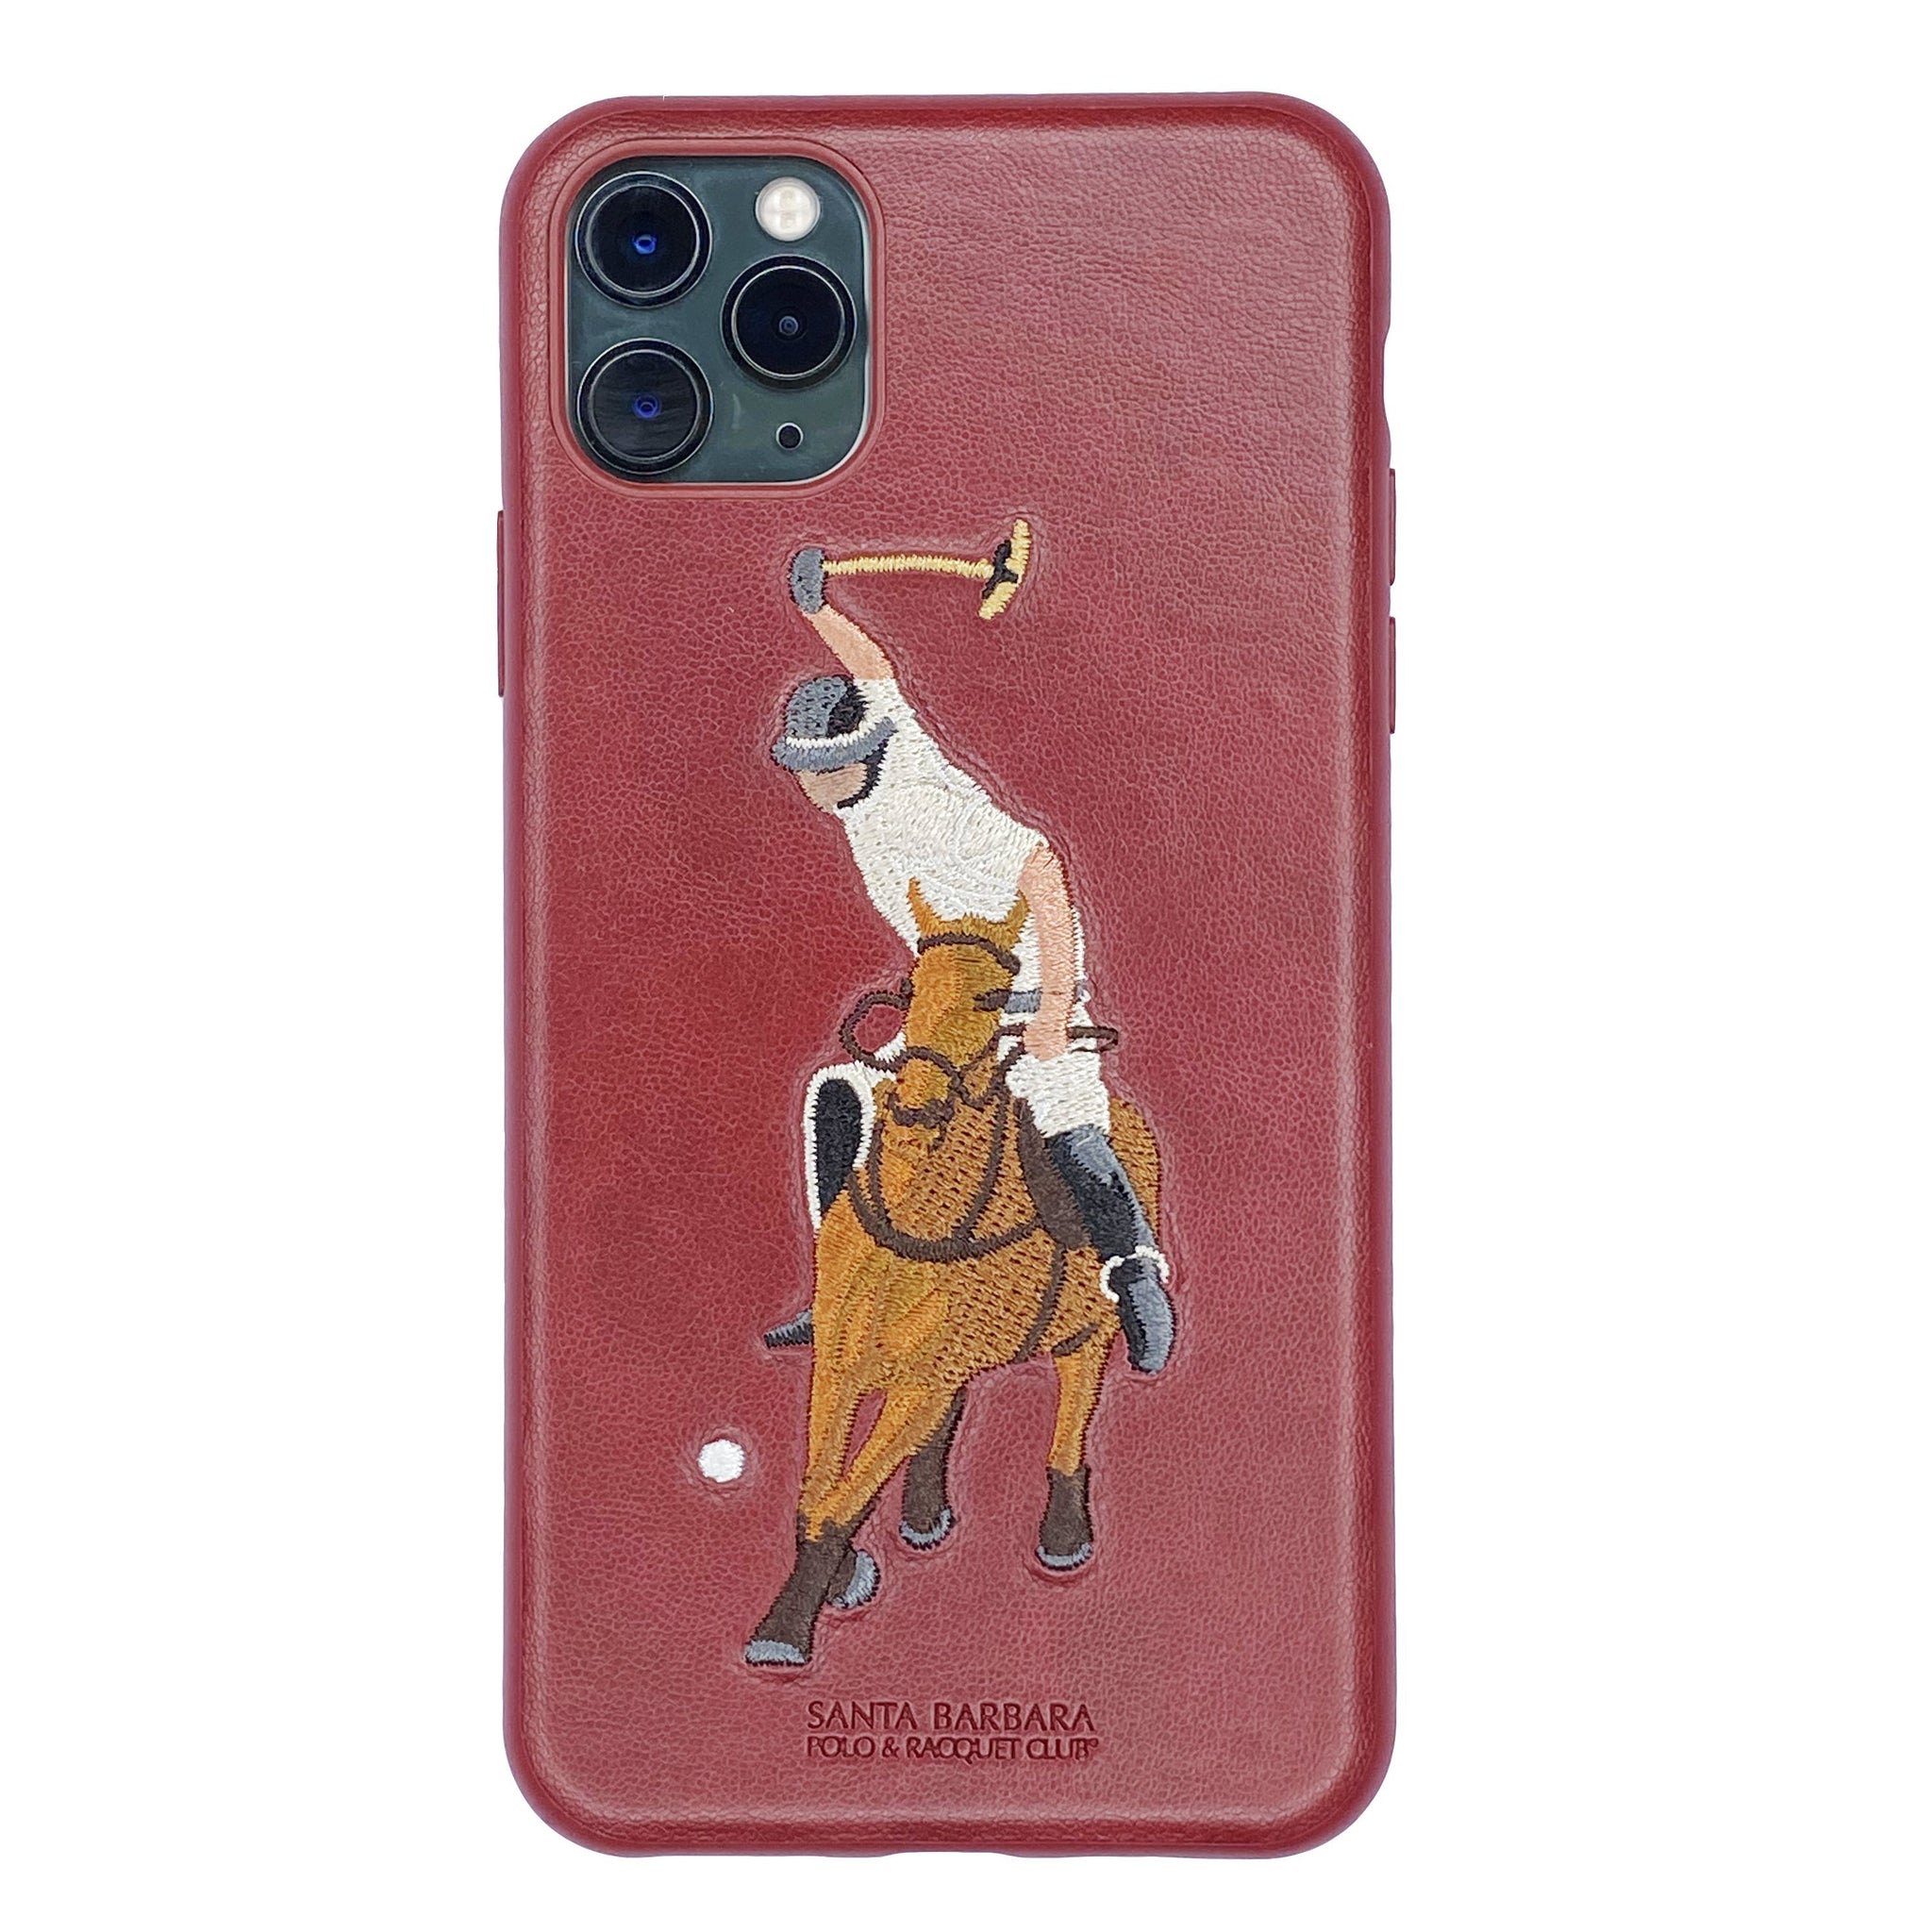 Santa Barbara Jockey Series Genuine Leather Case for iPhone 11 Pro Max Red - Planetcart